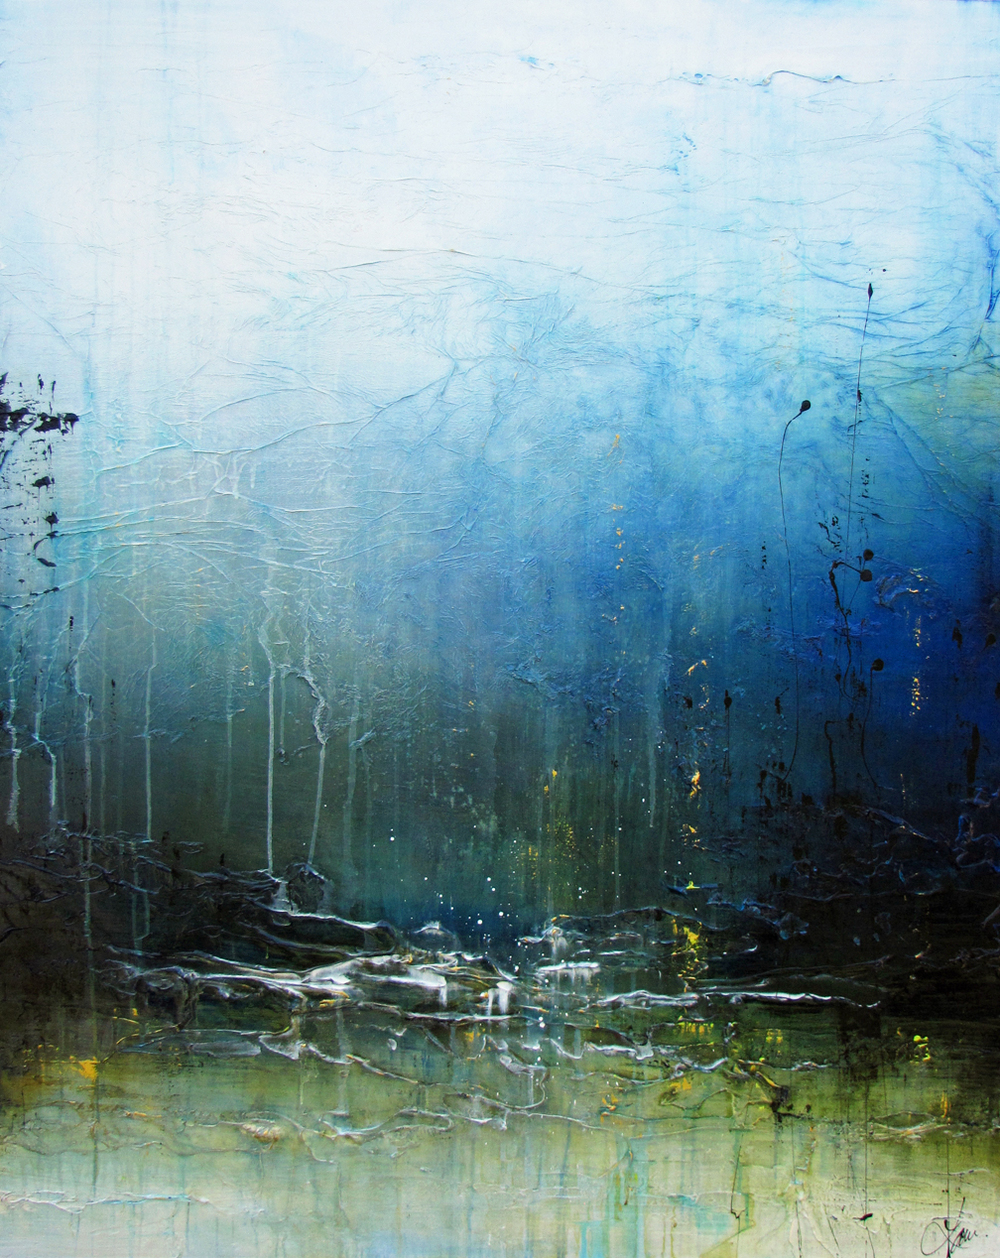 RainDrenched&Longing48x60.jpg